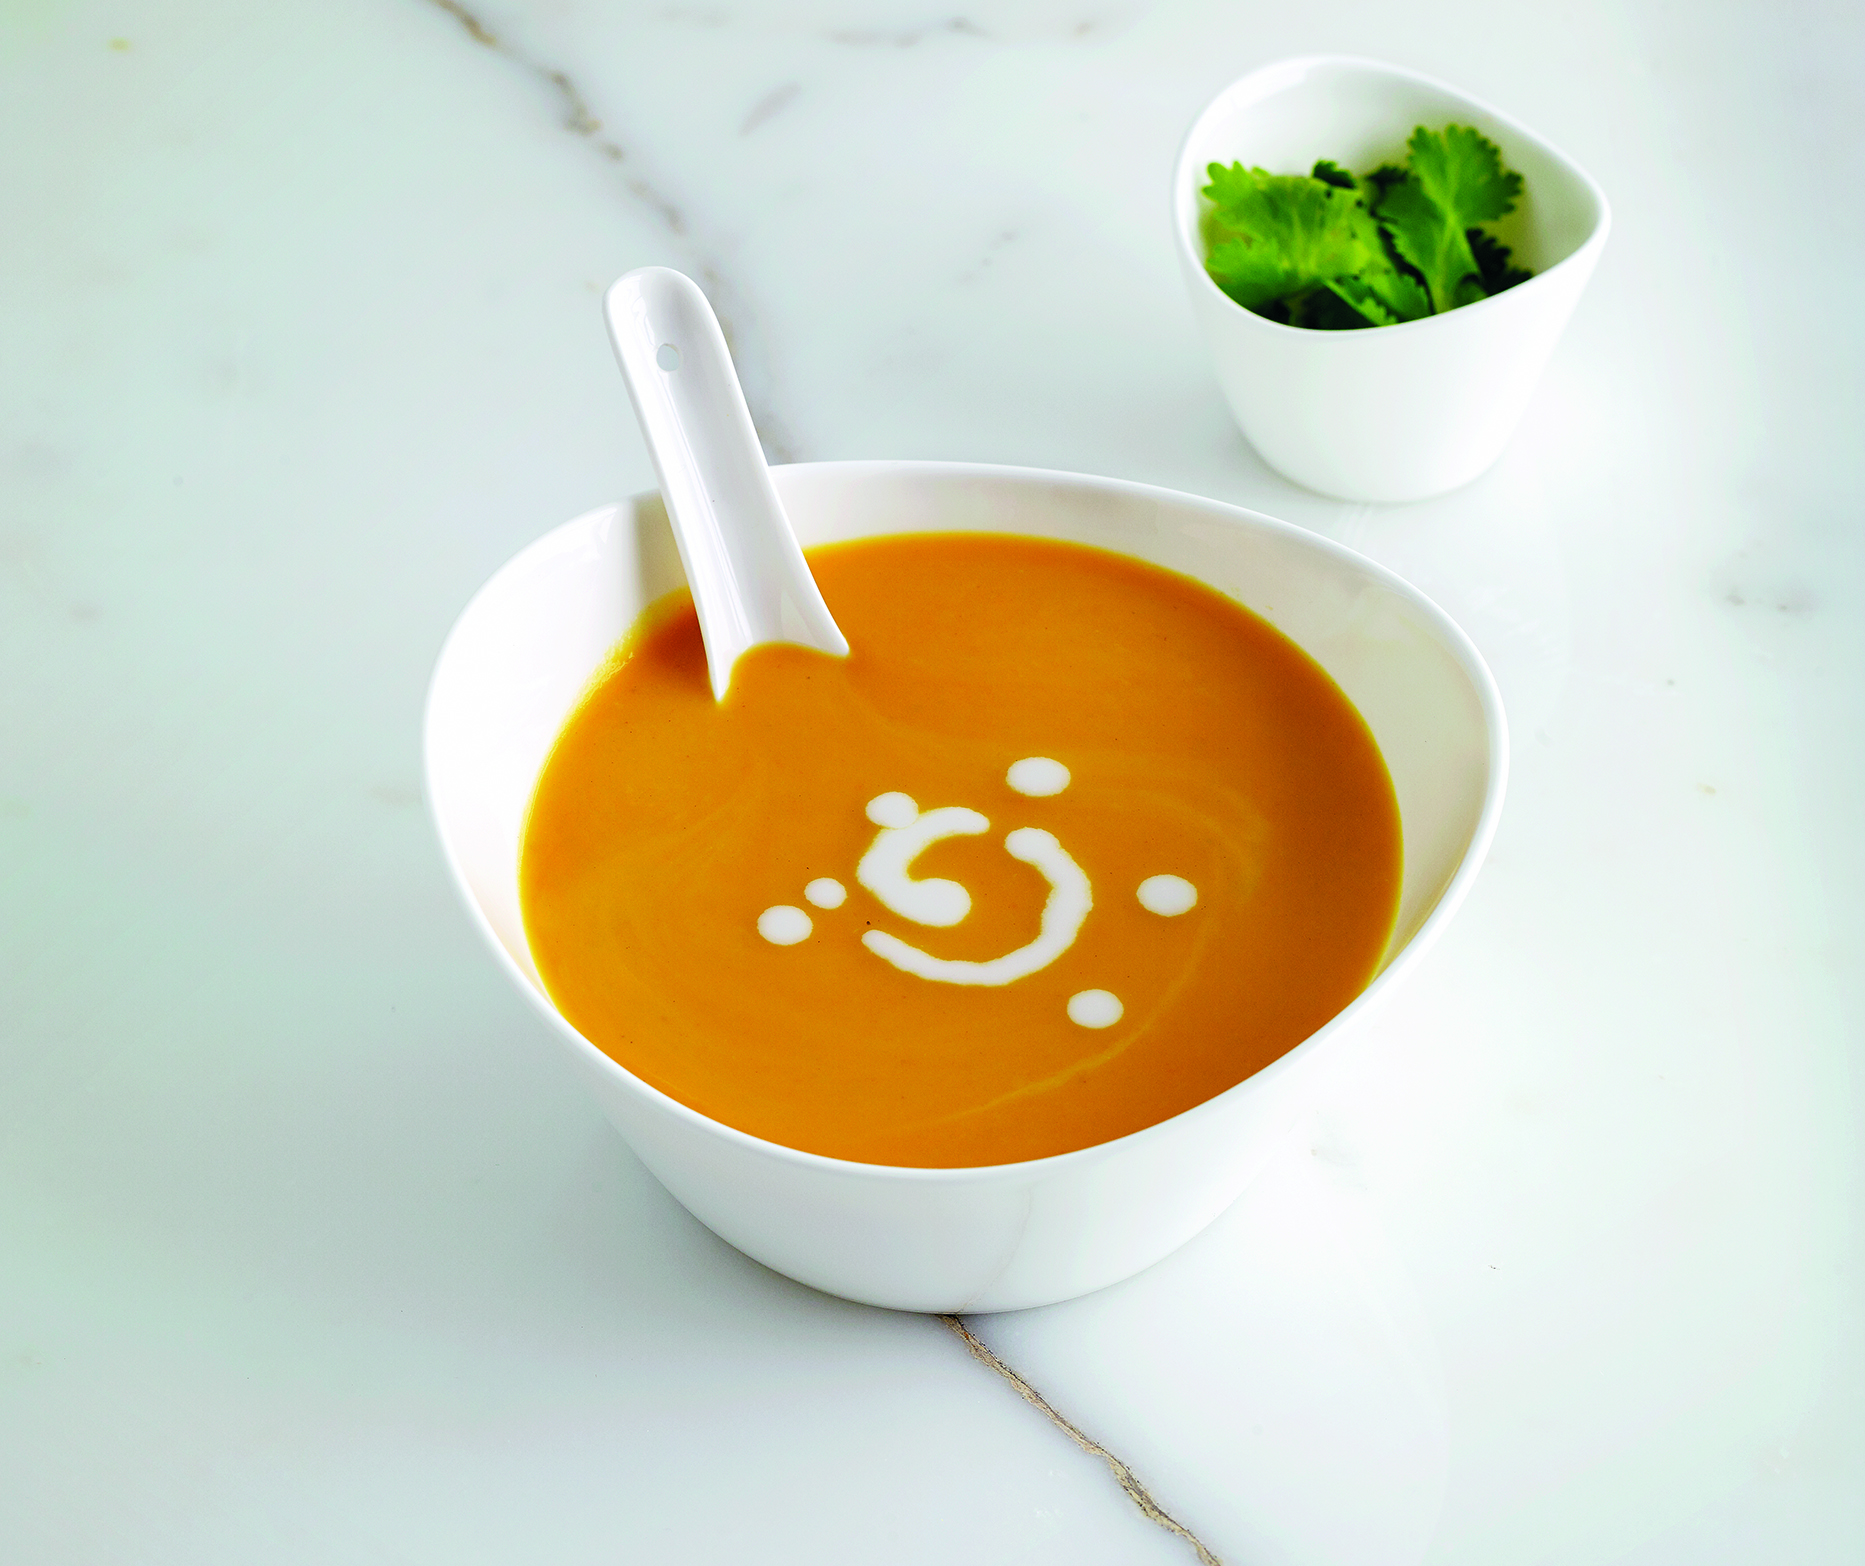 A white bowl filled with orange sweet potato soup sitting on a marble bench with a small bowl of coriander leaves